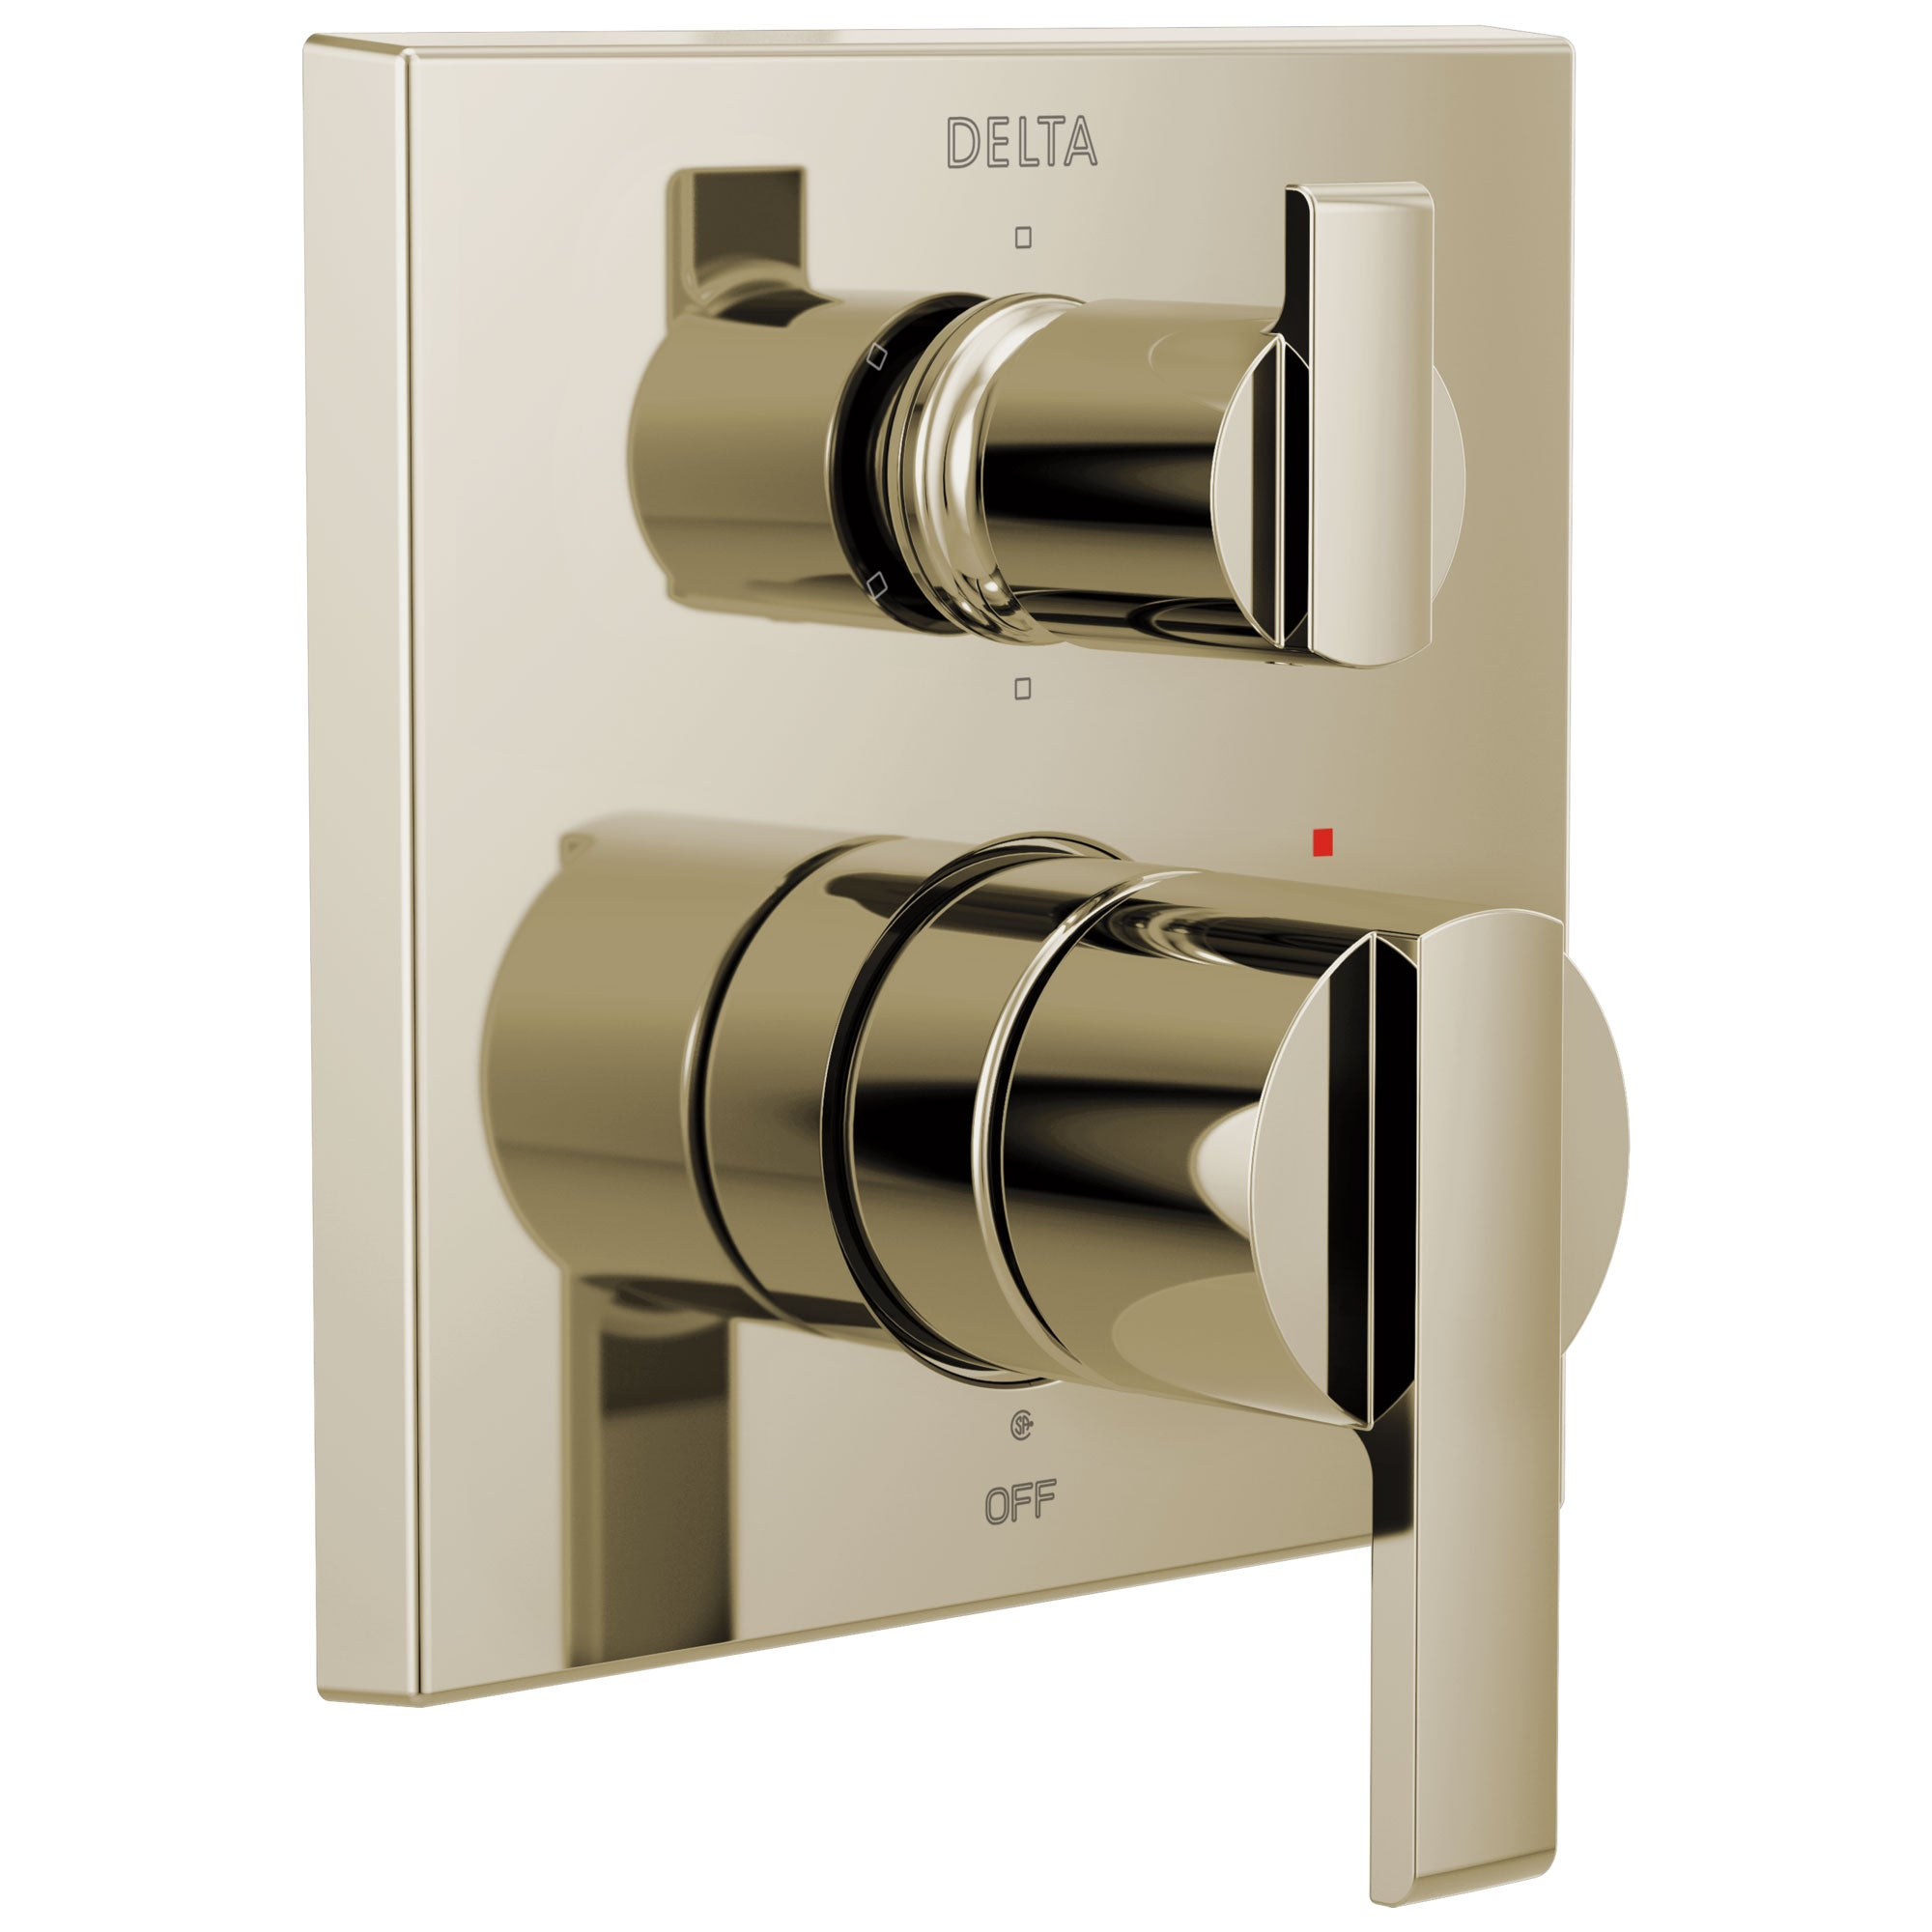 Delta Ara Polished Nickel Finish Angular Modern 14 Series Shower System Control with 6-Setting Integrated Diverter Includes Valve and Handles D3183V